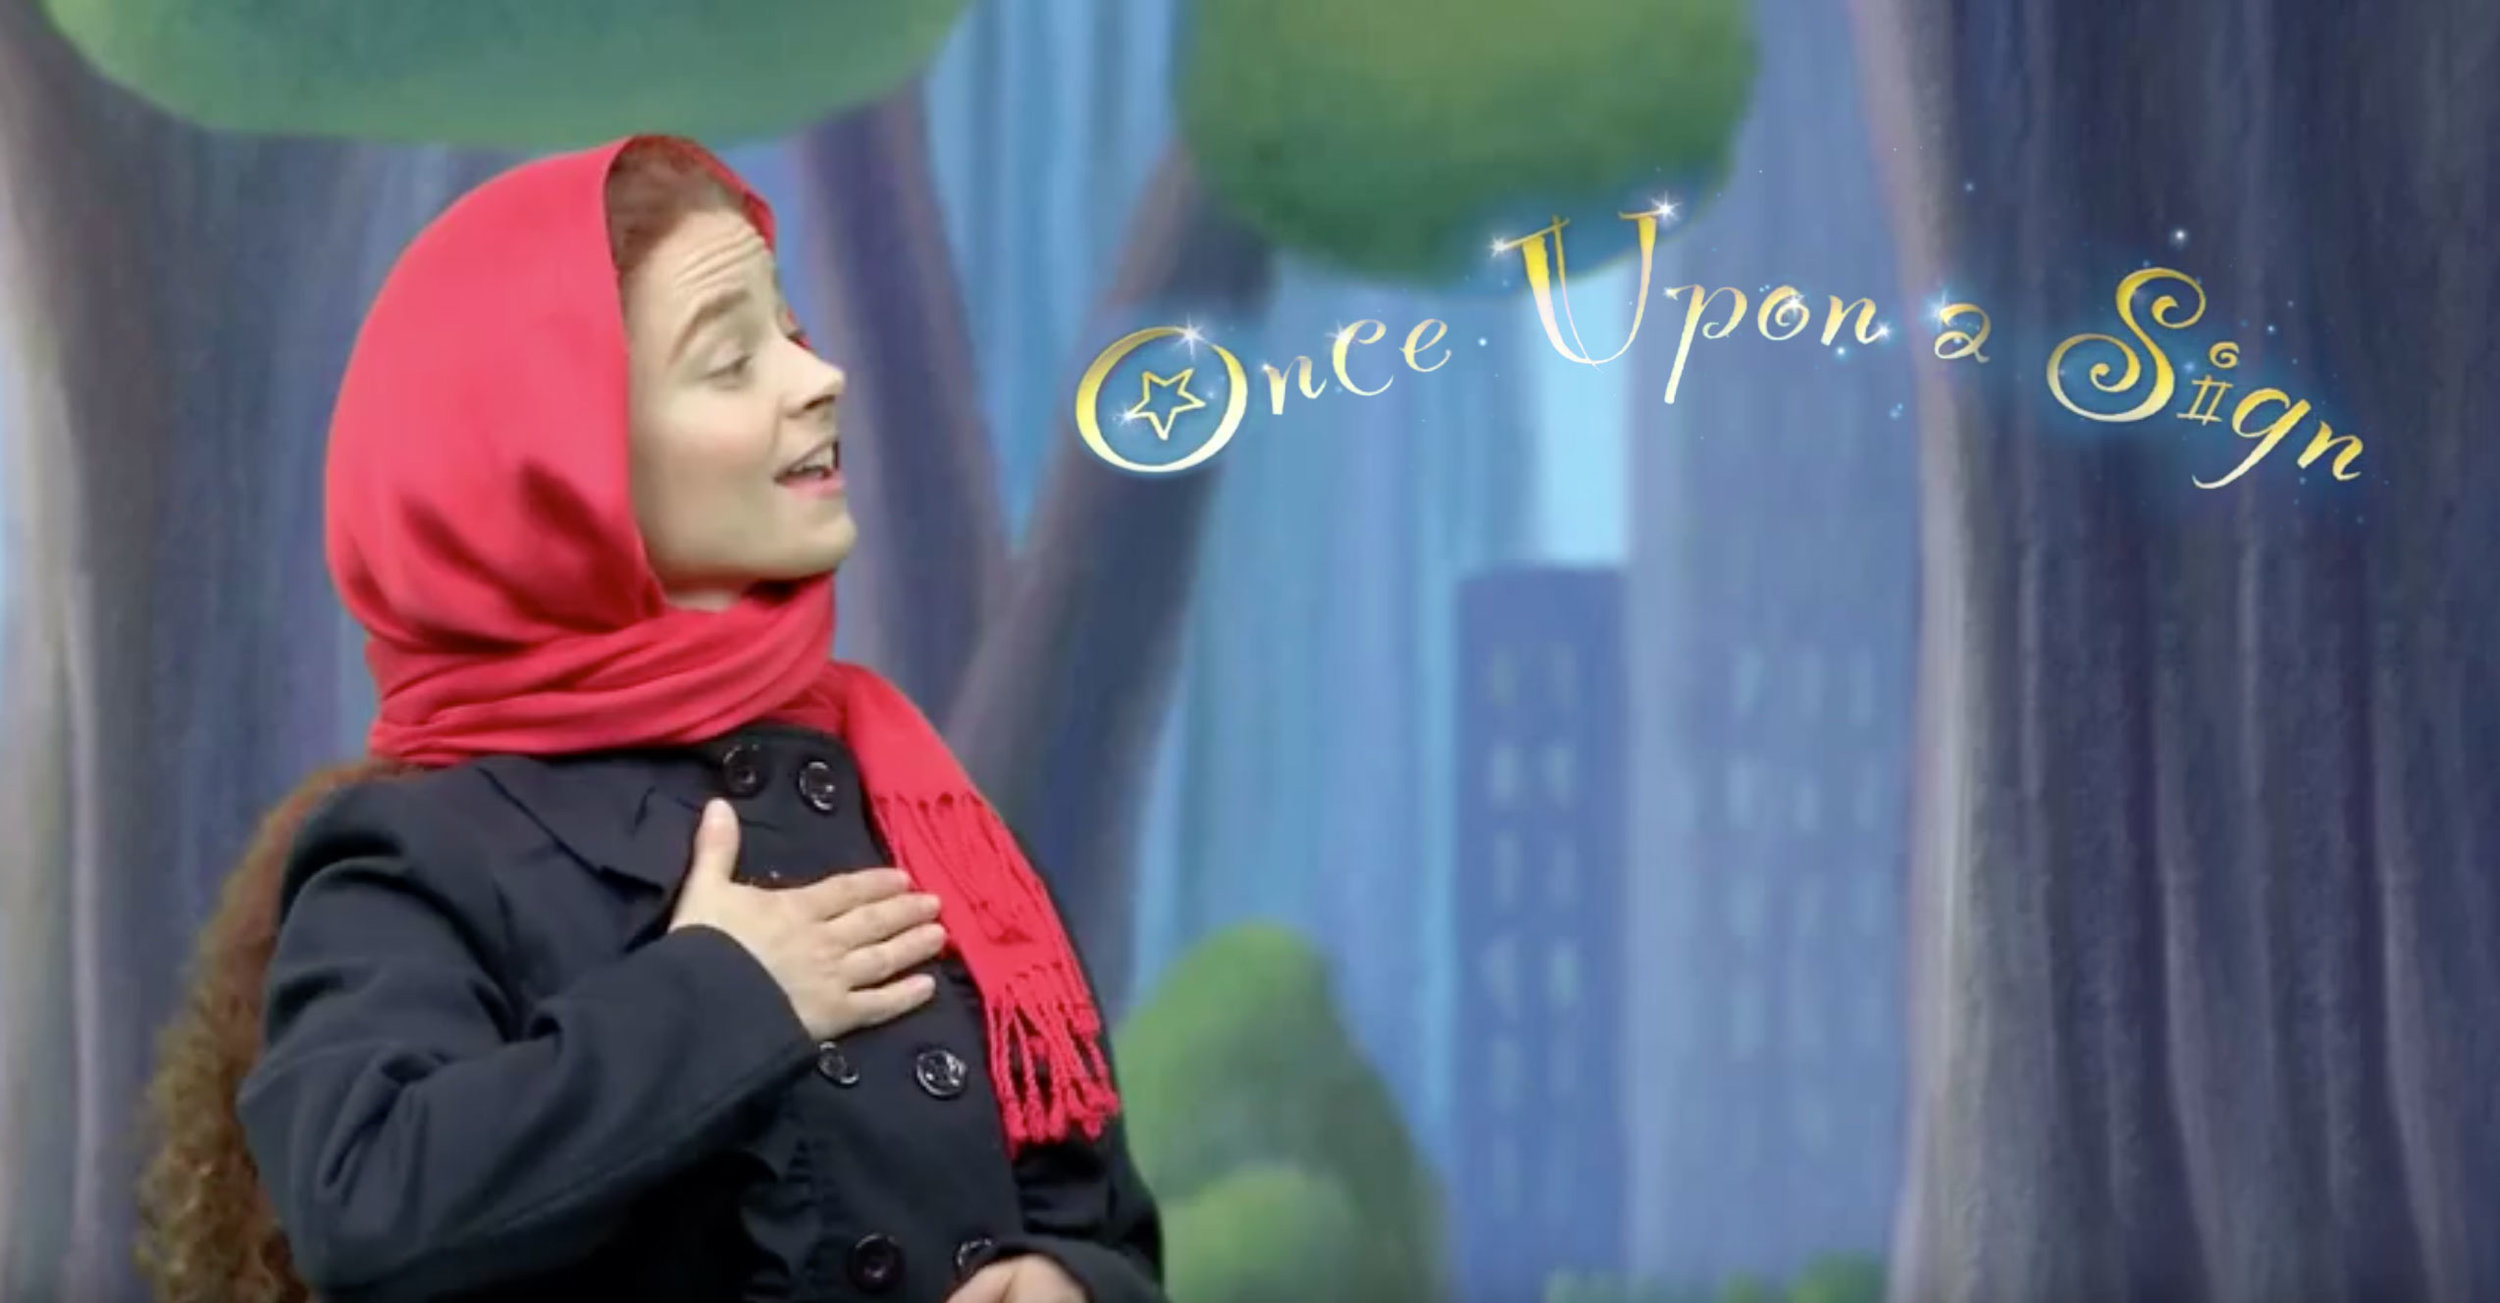 VV_once_upon_a_sign_banner.jpg